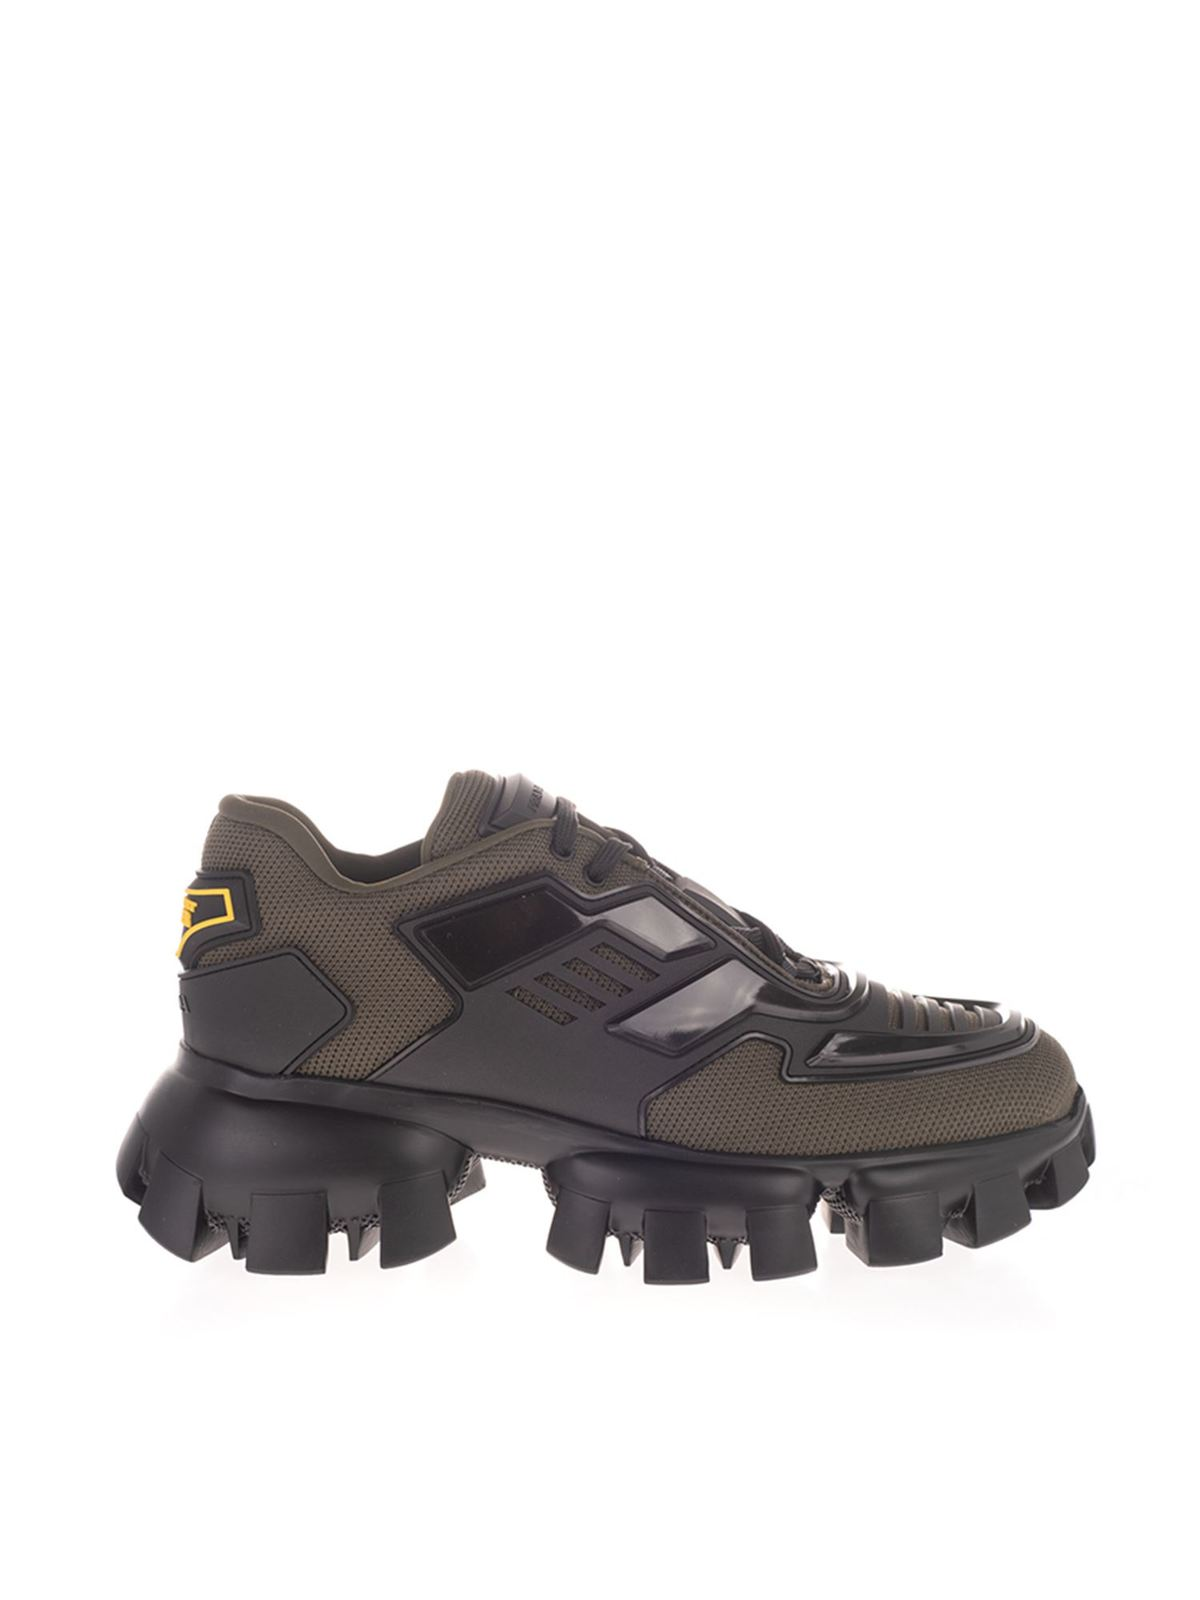 PRADA CLOUDBUST THUNDER SNEAKERS IN GREEN